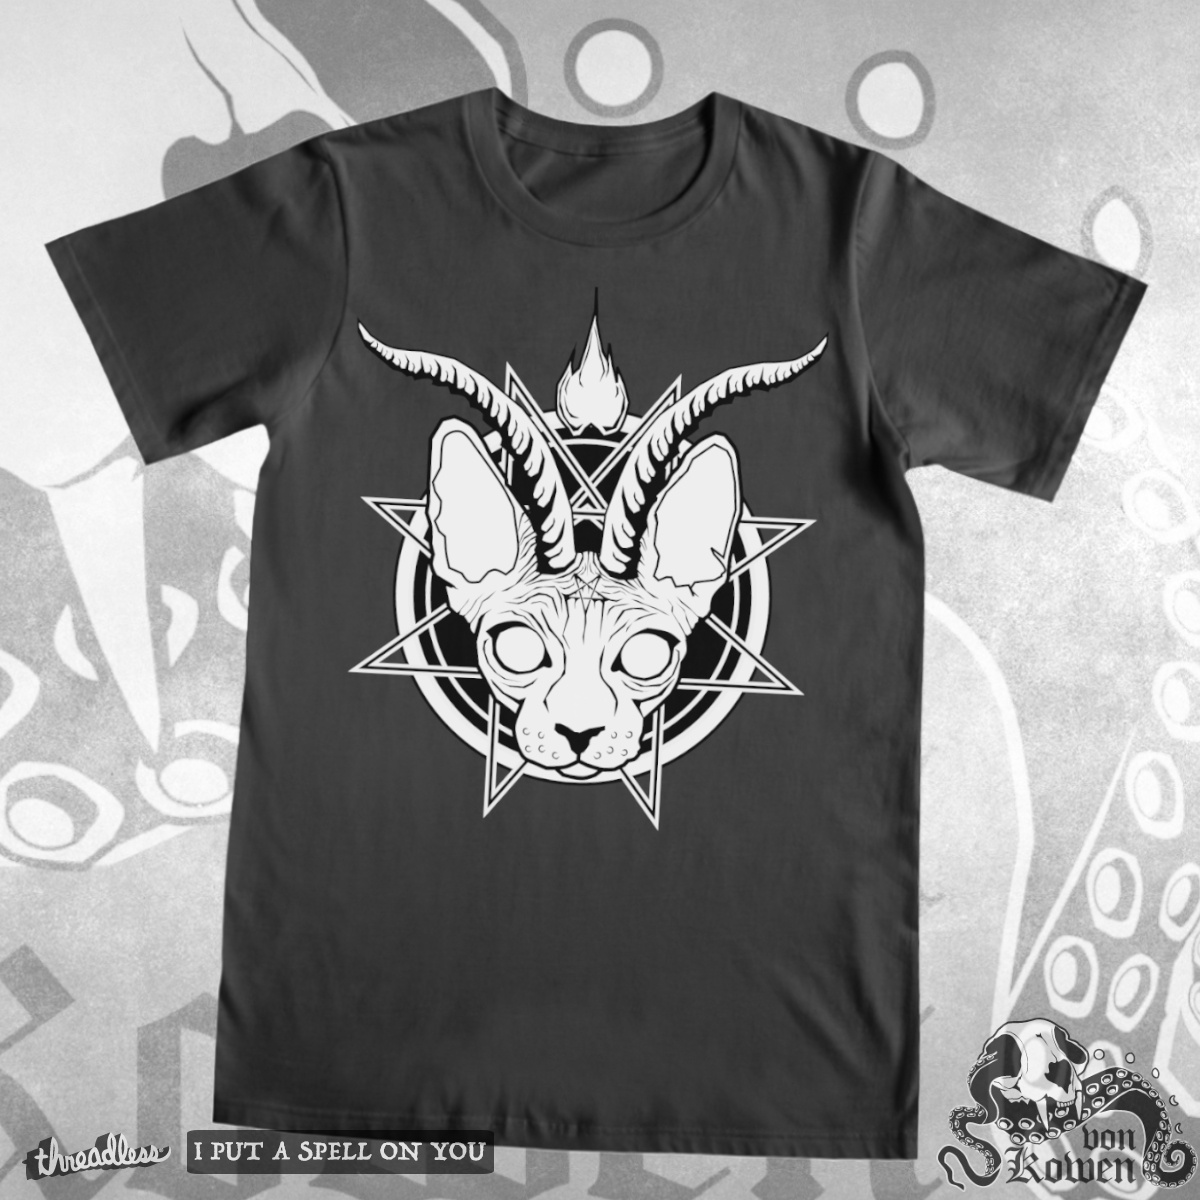 Baphocat, a cool t-shirt design